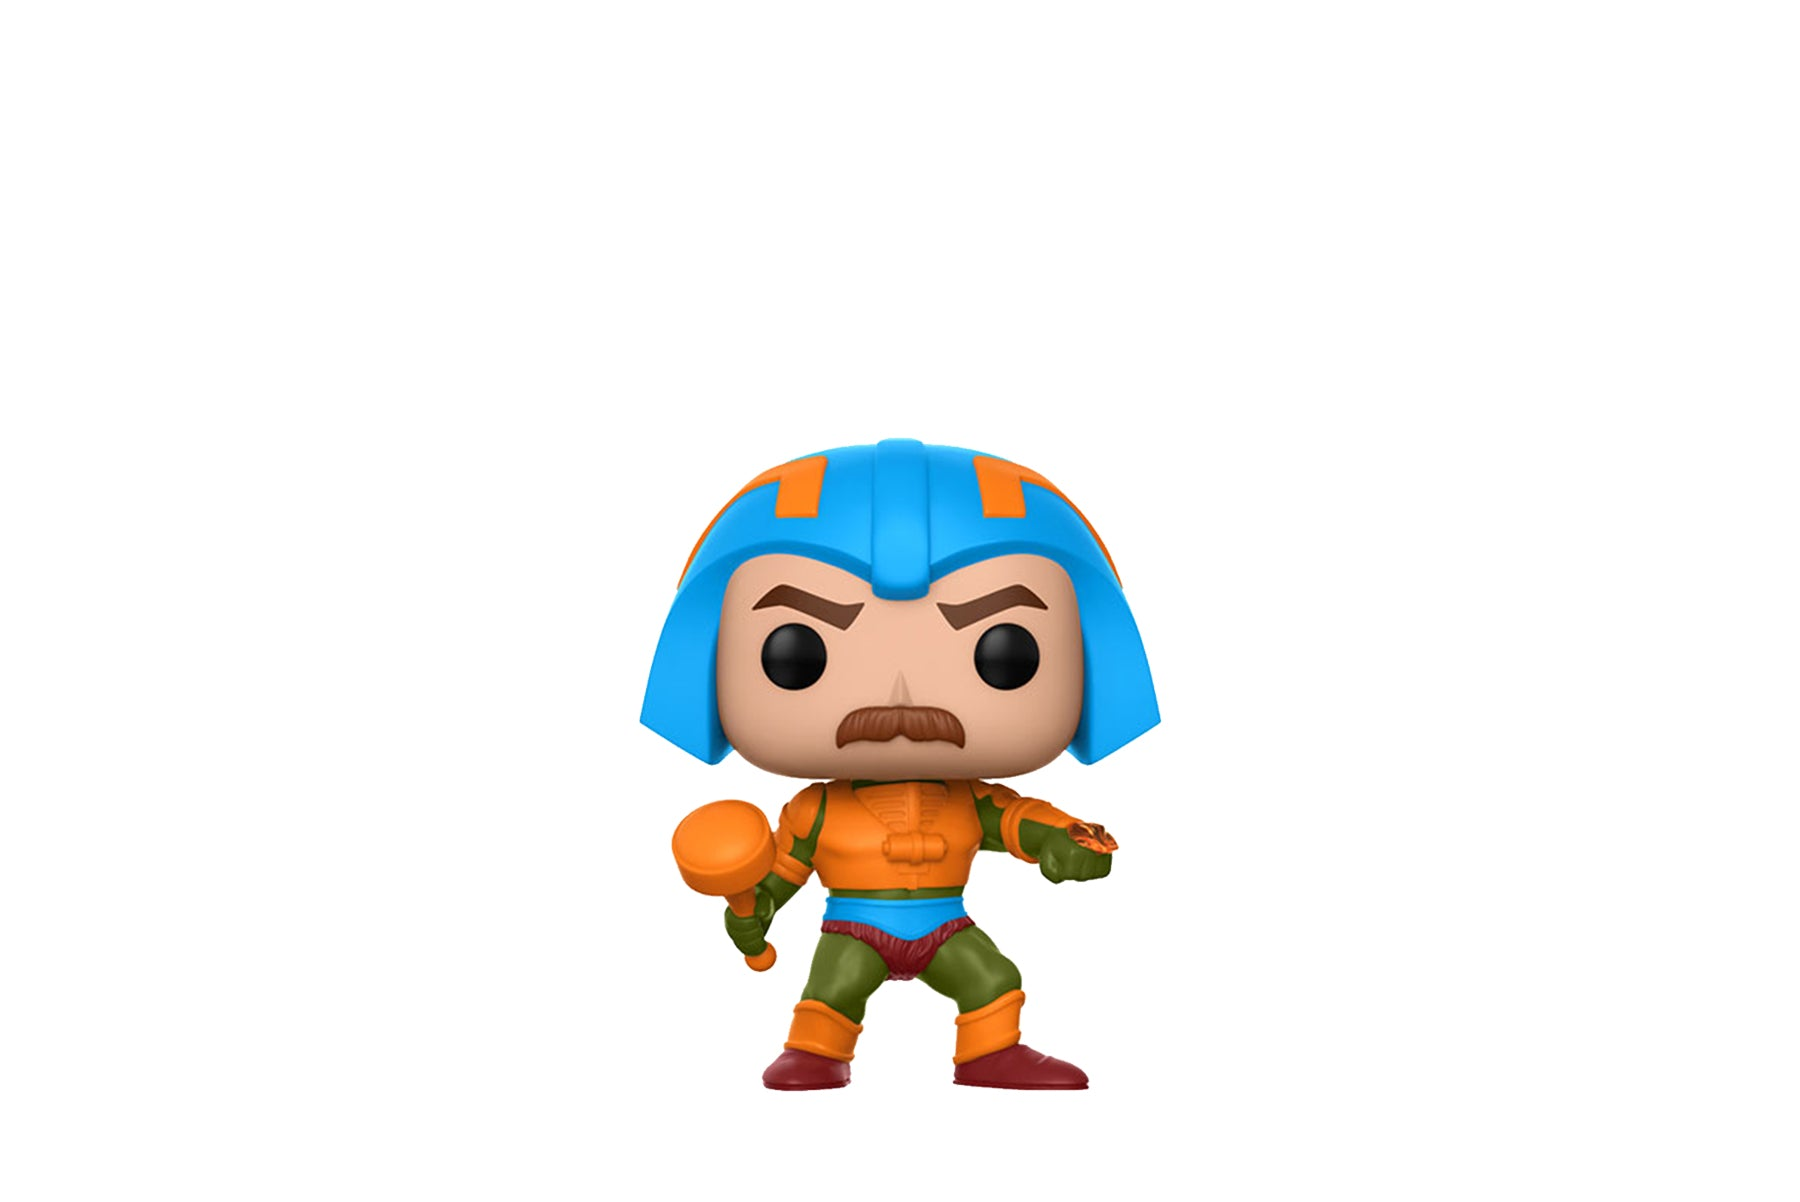 Pop! Television #538 - Masters of the Universe Man-At-Arms Vinyl Figure -  Specialty Series Exclusive